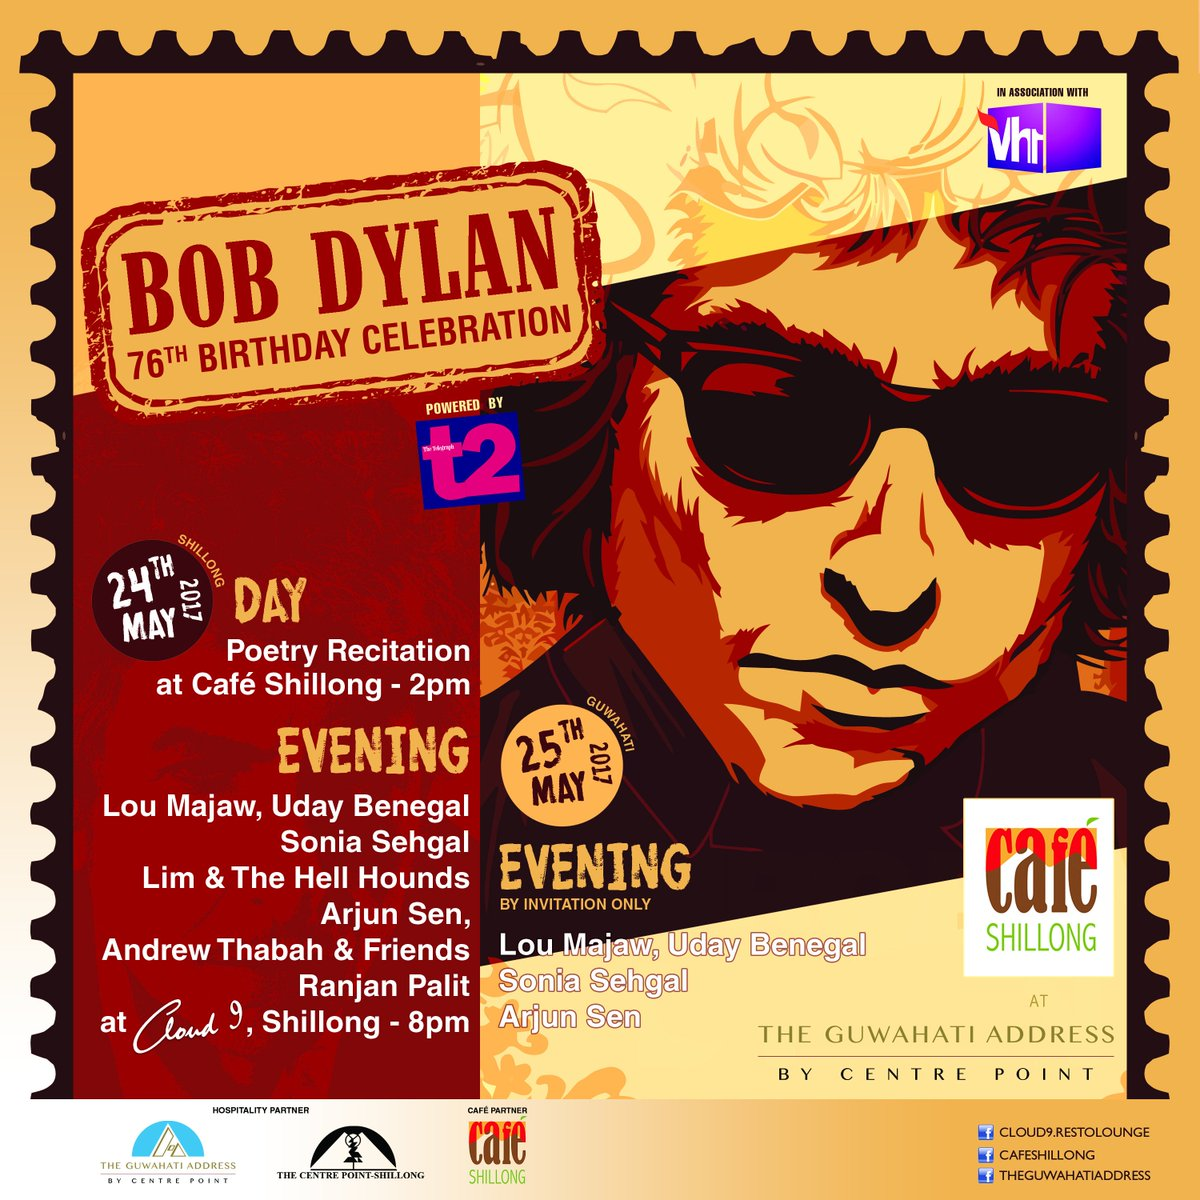 Vh1 India On Twitter Celebrate Bobdylan S 76th Birthday